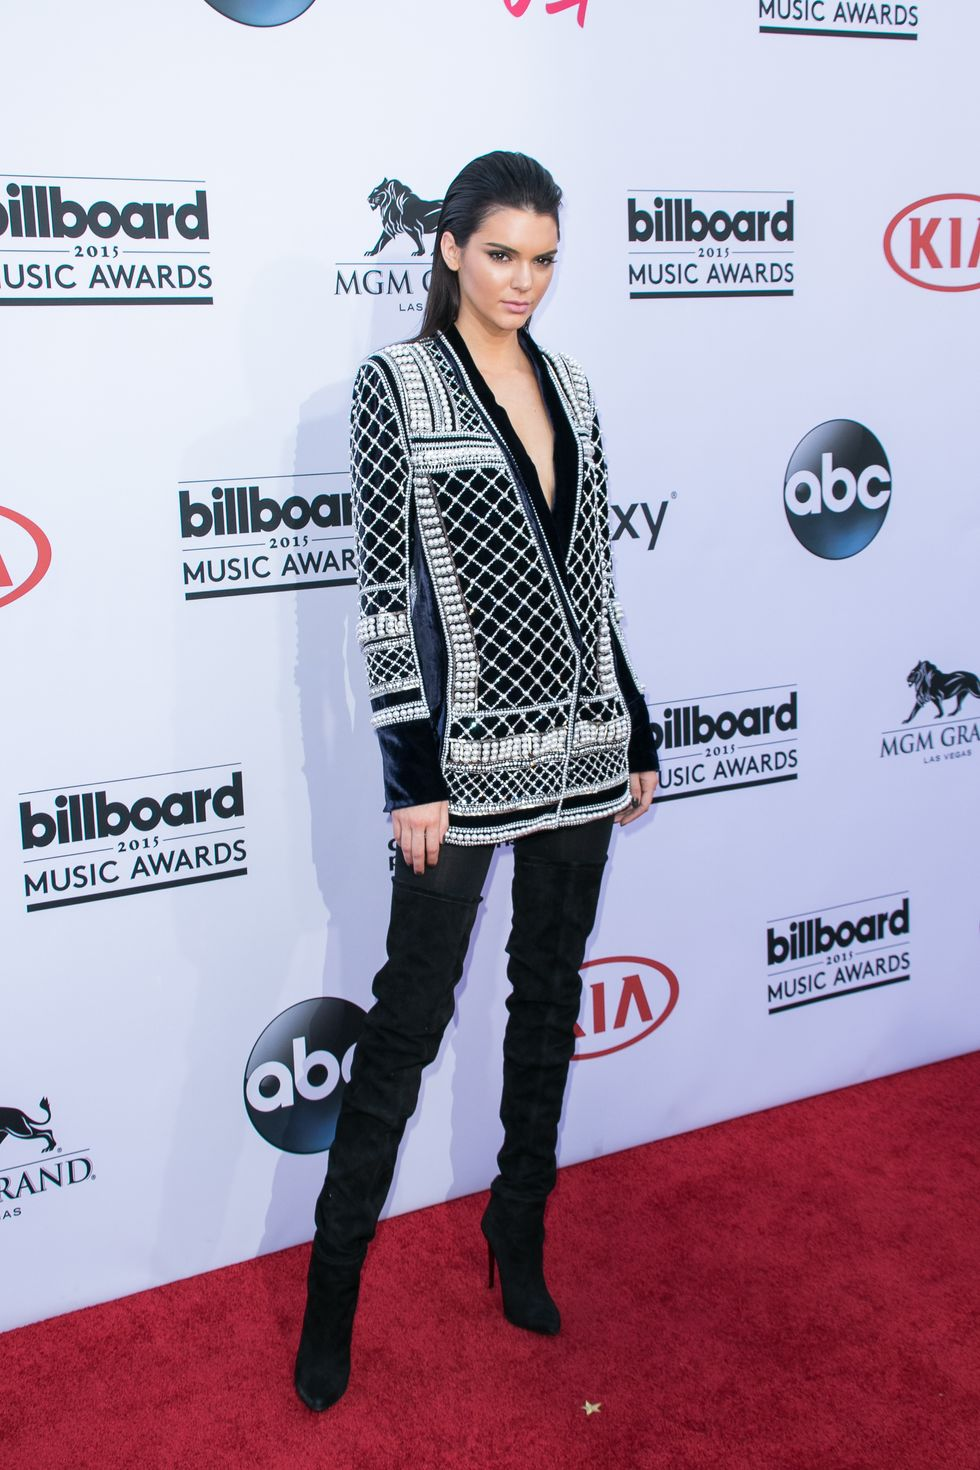 The Best and Worst Celebrity Fashion at the Billboard Music Awards